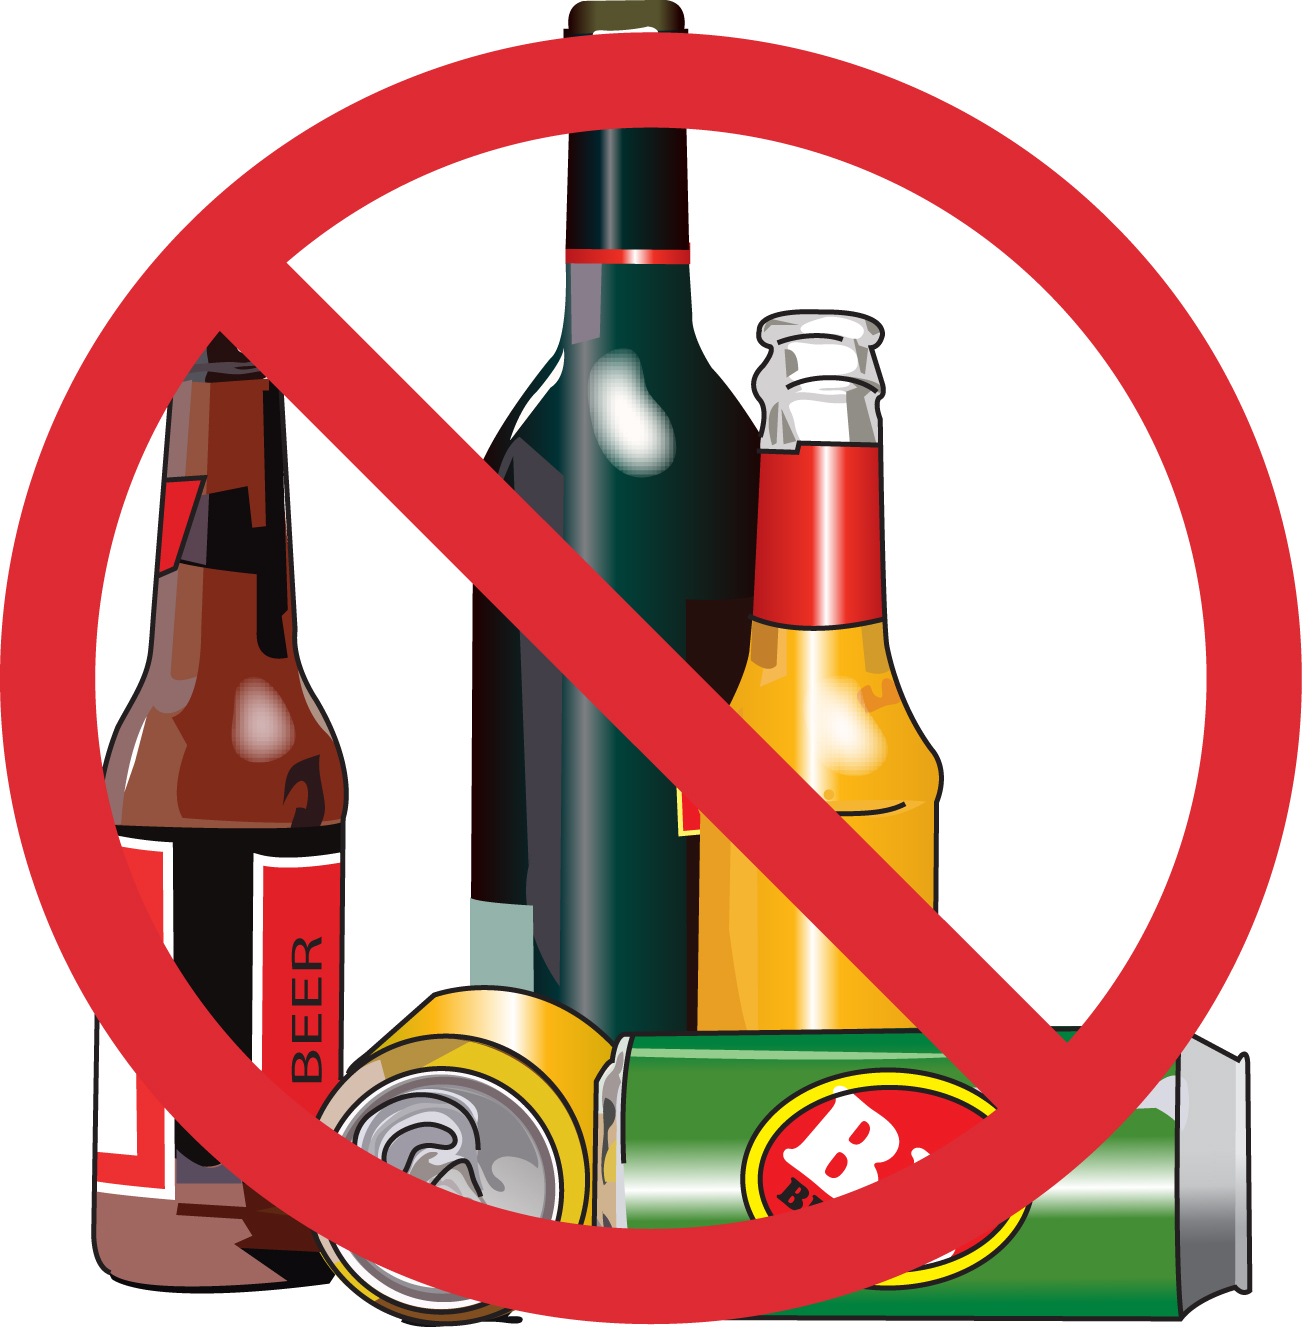 No drinking clipart picture free library No wine sign clipart - Clip Art Library picture free library